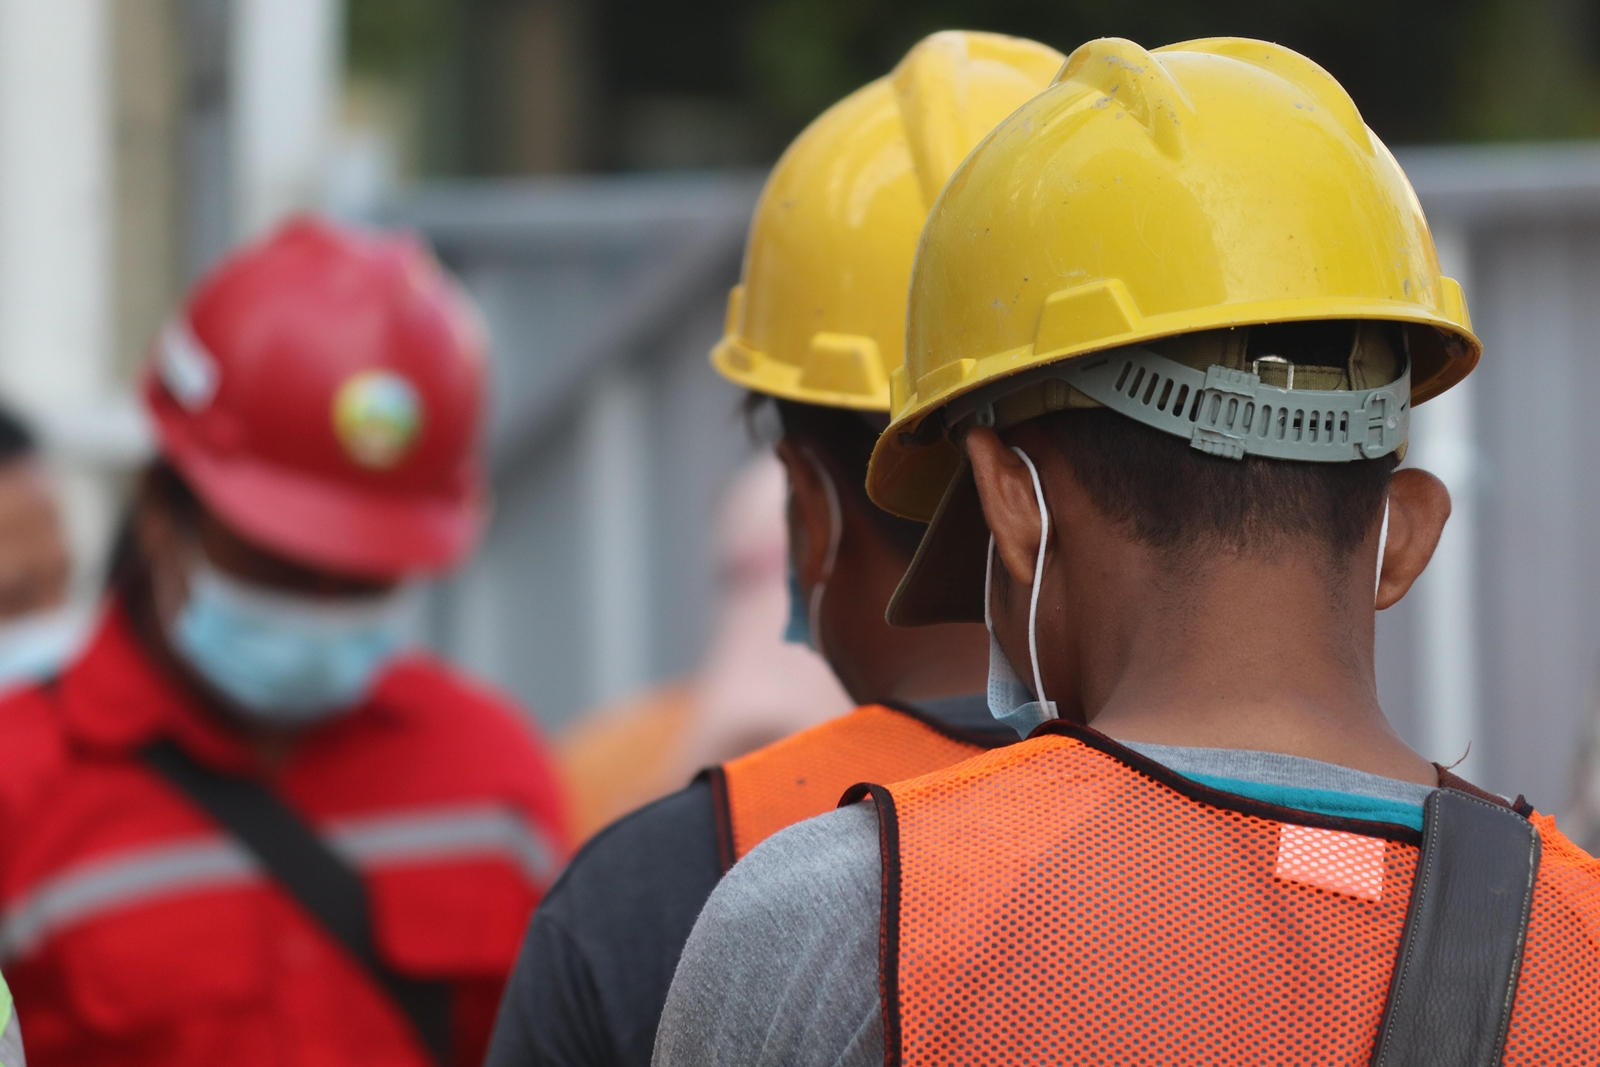 Construction workers wearing yellow safety hats